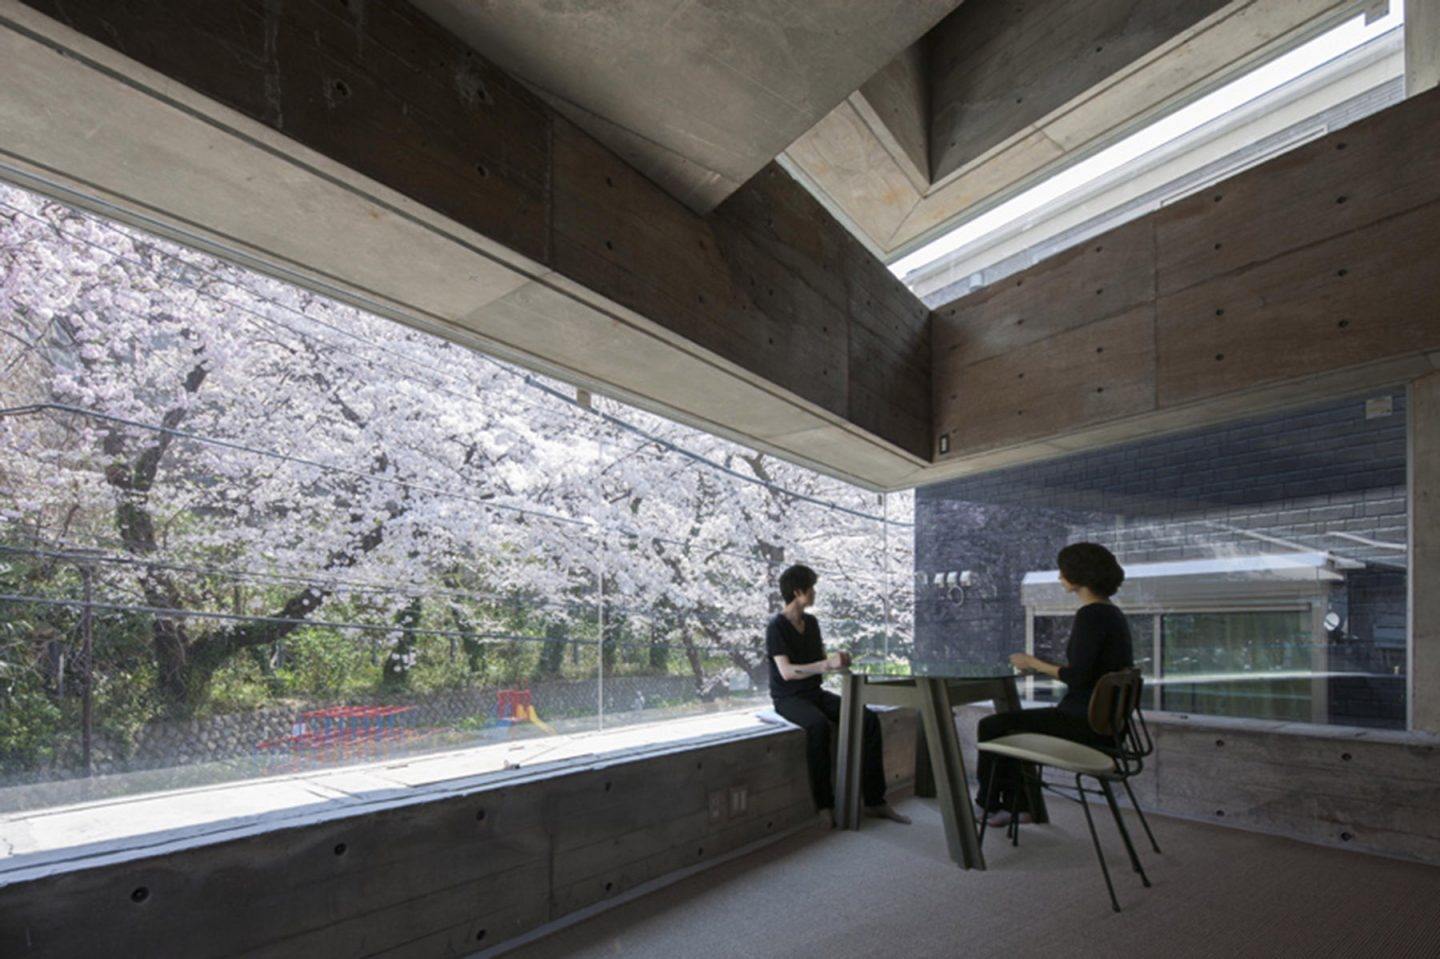 iGNANT-Architecture-Shinsuke-Fuji-Architects-Oriel-Window-House-Office-Japan-004